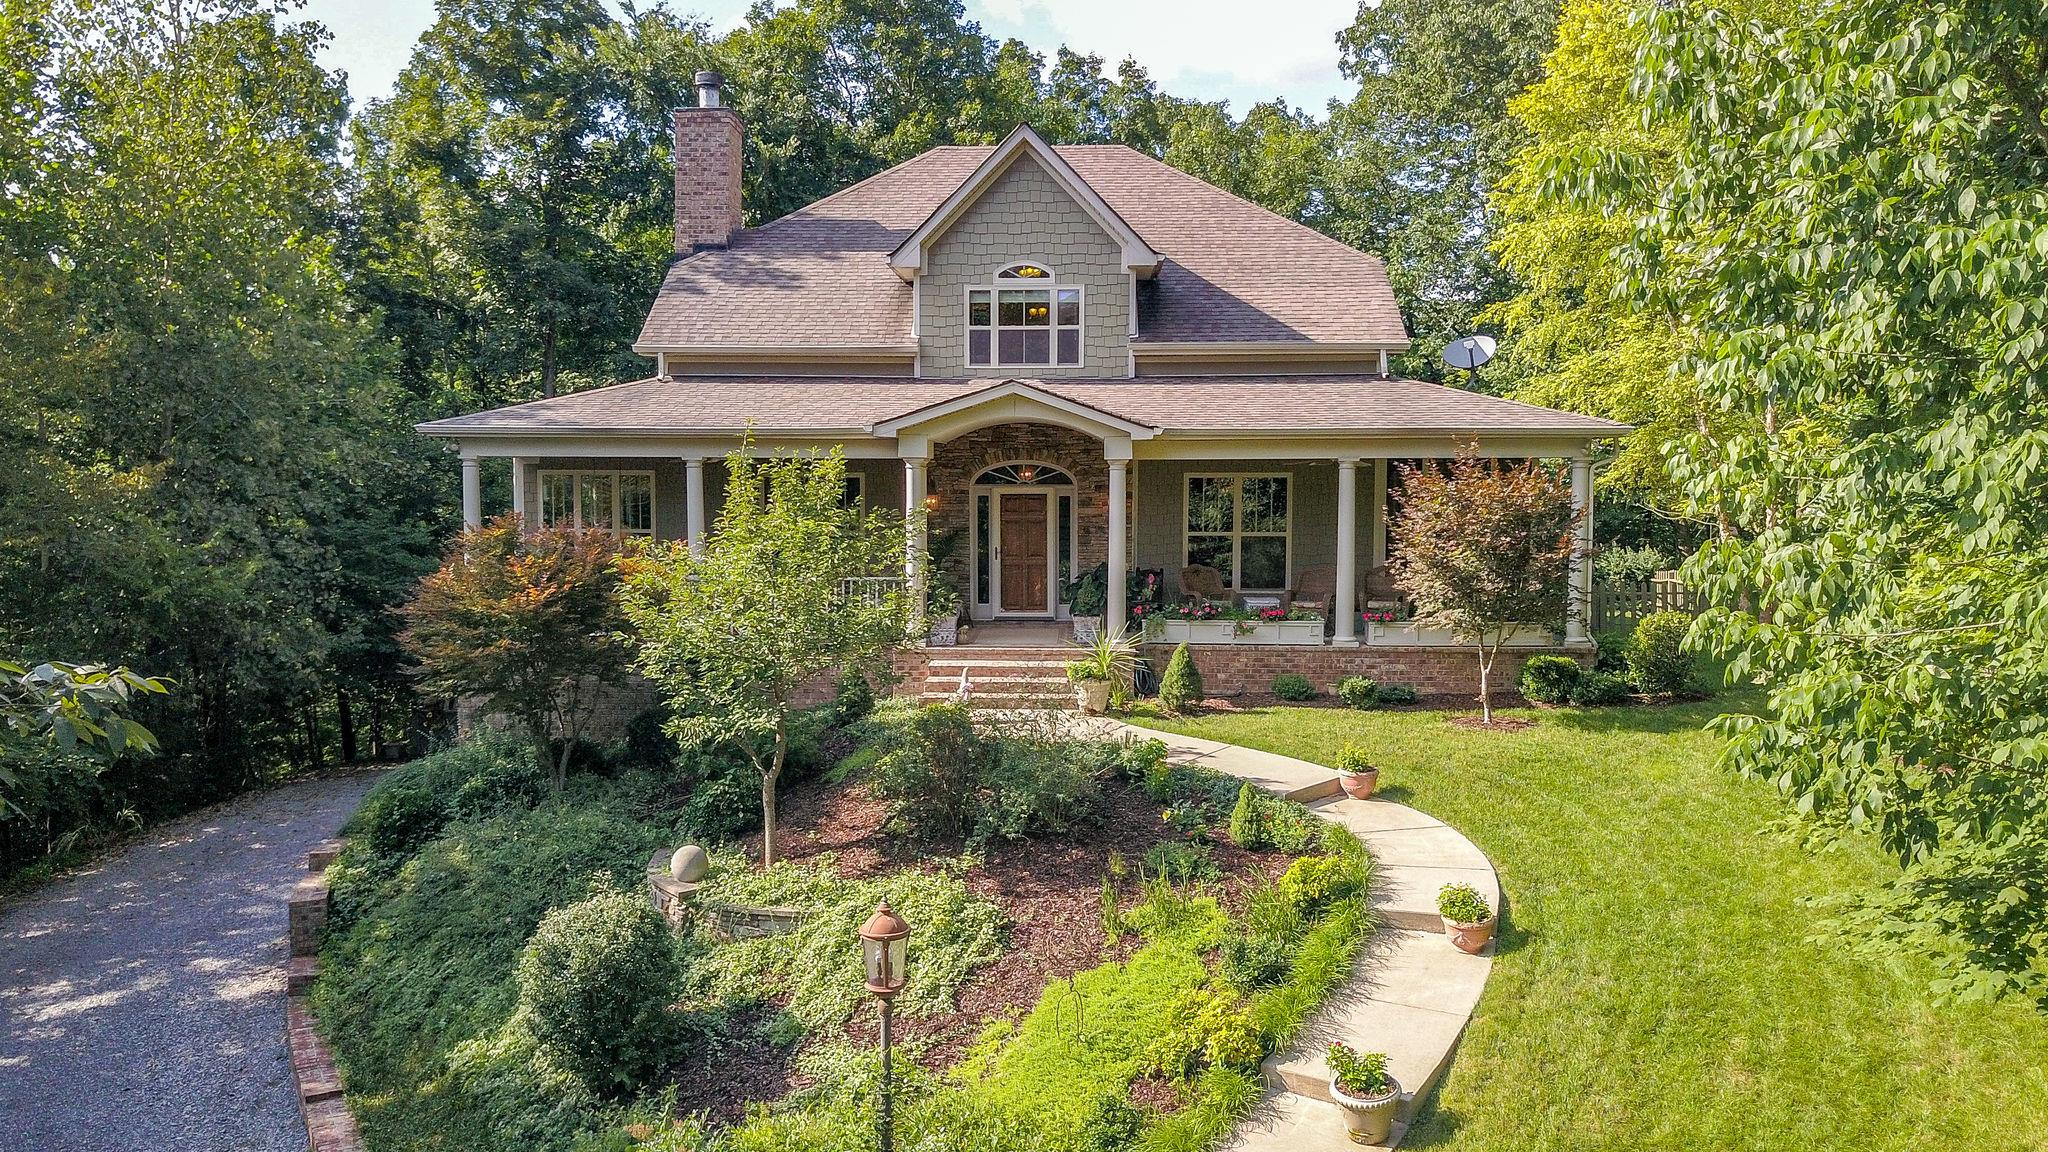 208 Happy Hollow Rd, Goodlettsville, TN 37072 - Goodlettsville, TN real estate listing